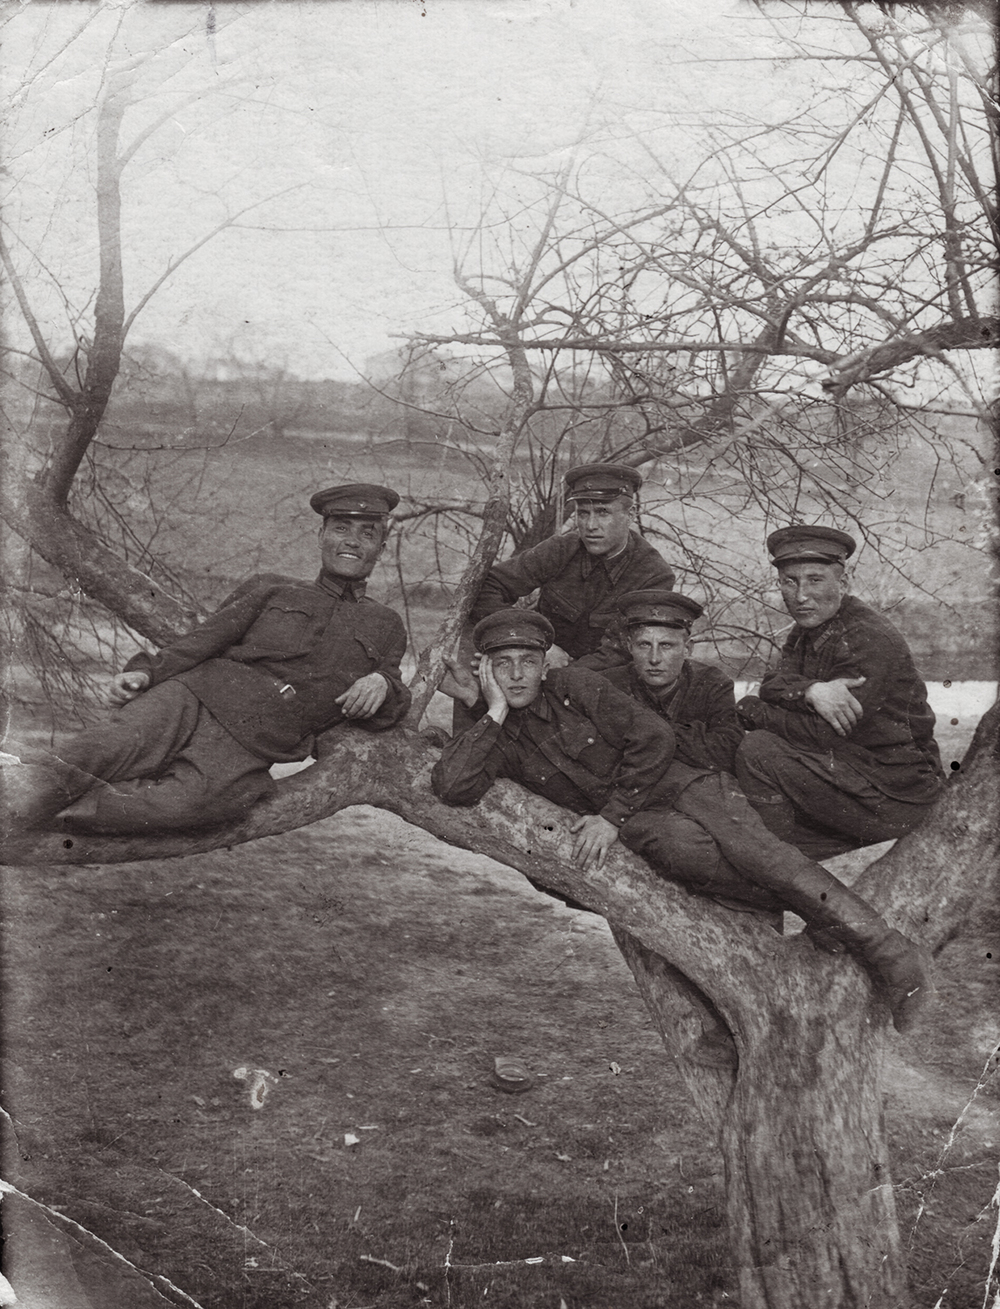 Cadet Semyon Rabovsky laying down, center.  Kiev Infantry School.  1941, pre-war.